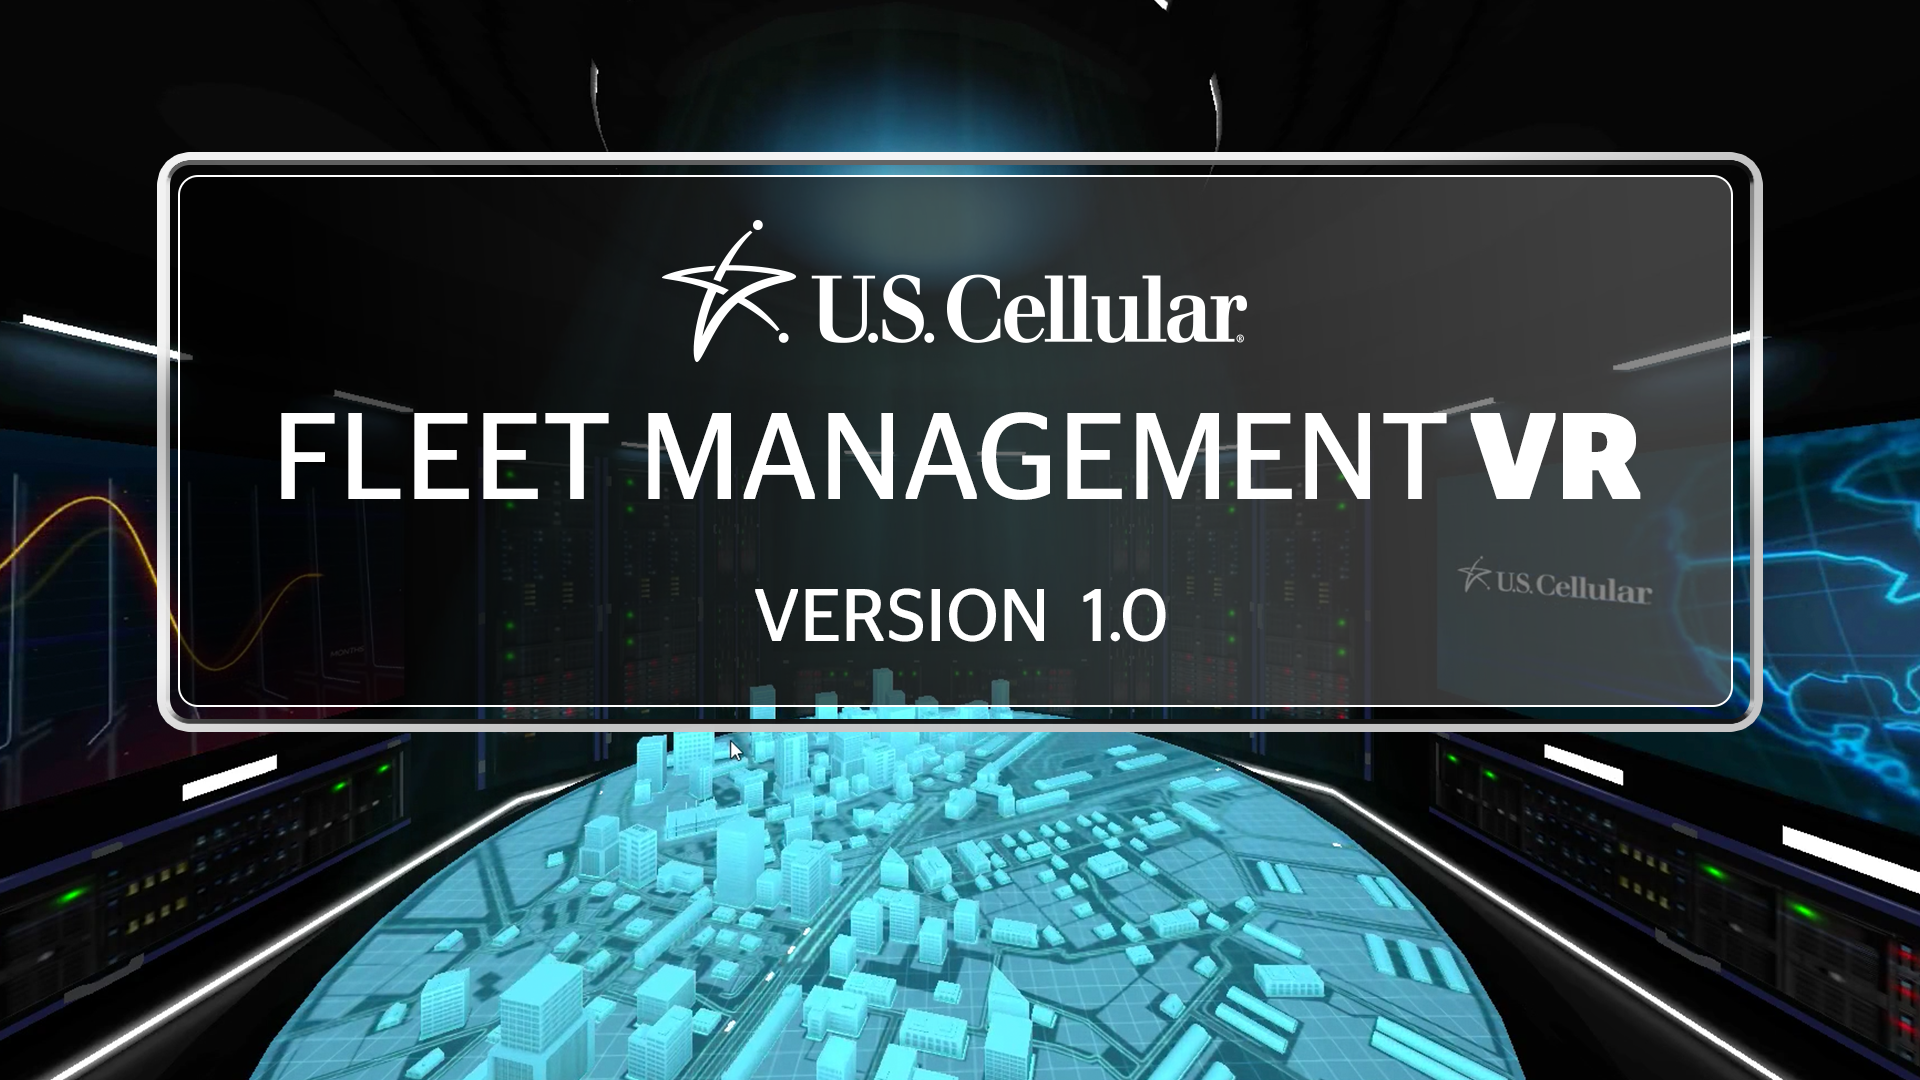 U.S. CELLULAR'S FLEET MANAGEMENT SOLUTIONS (2016)